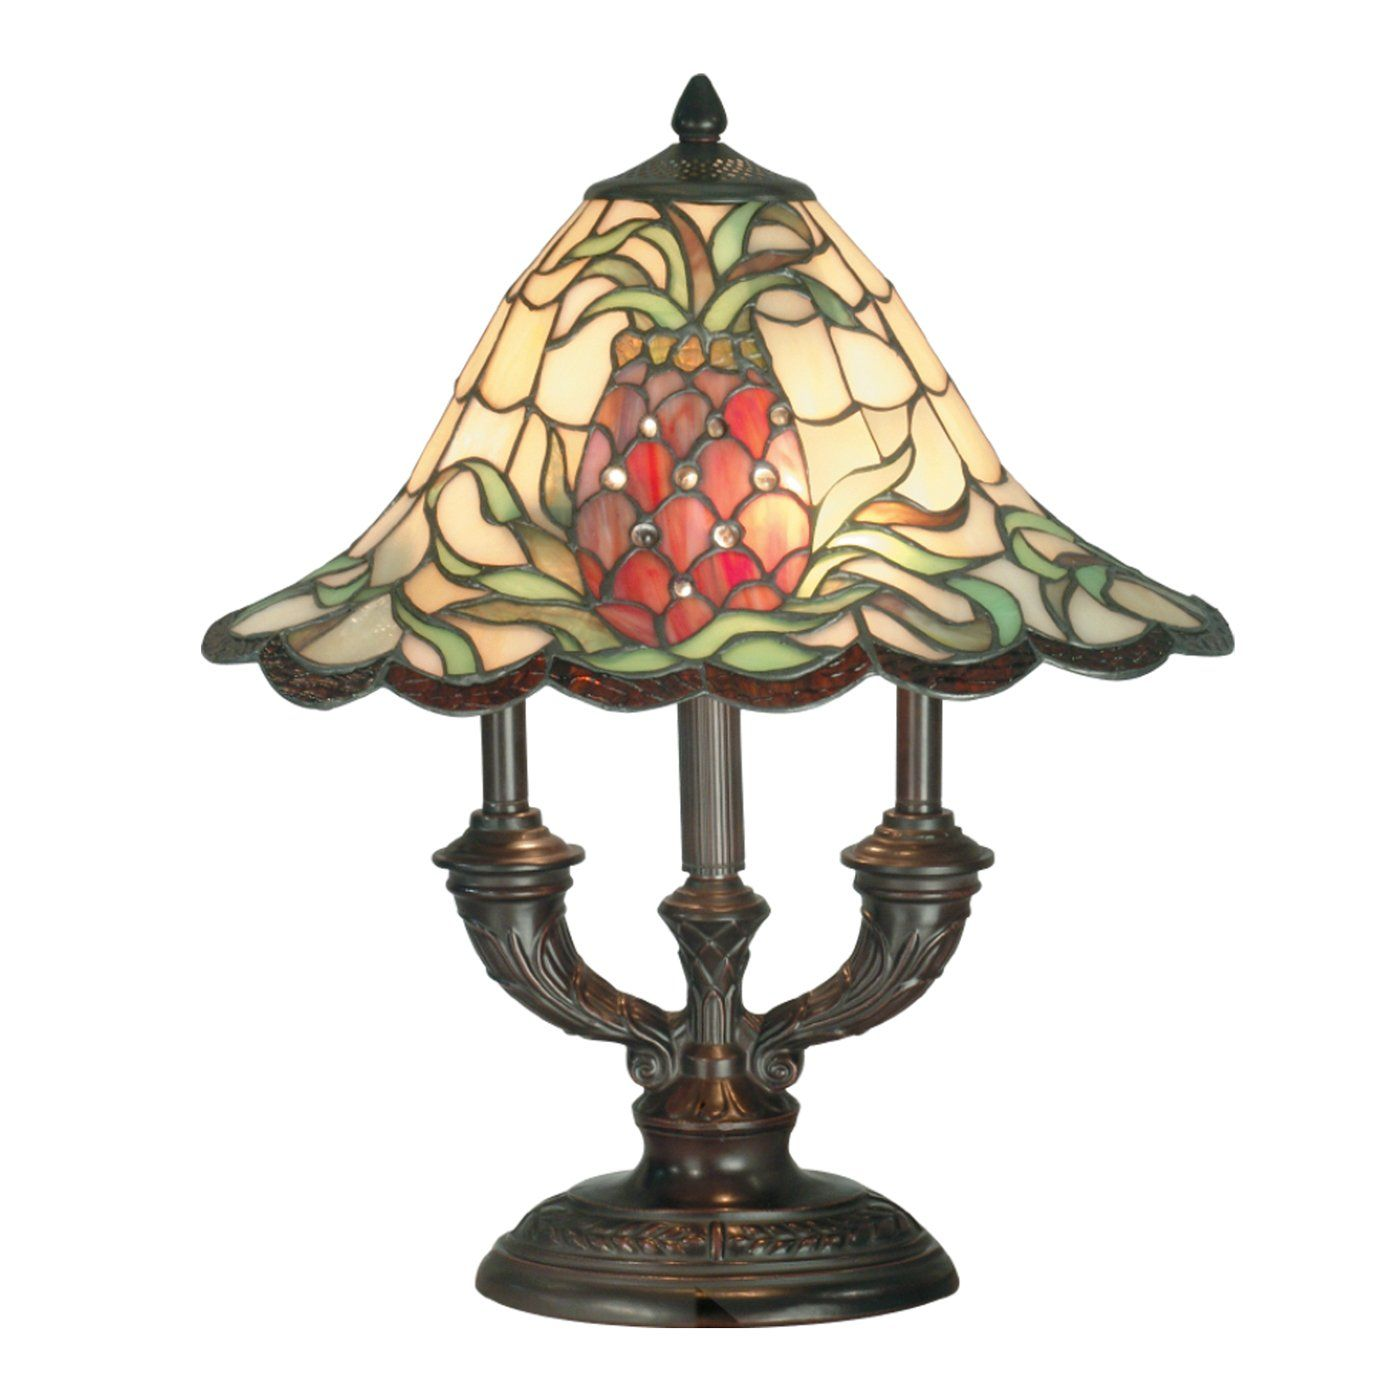 Old Tiffany Lamps Dale Tiffany Tt70698 2 Light Odessa Table Lamp